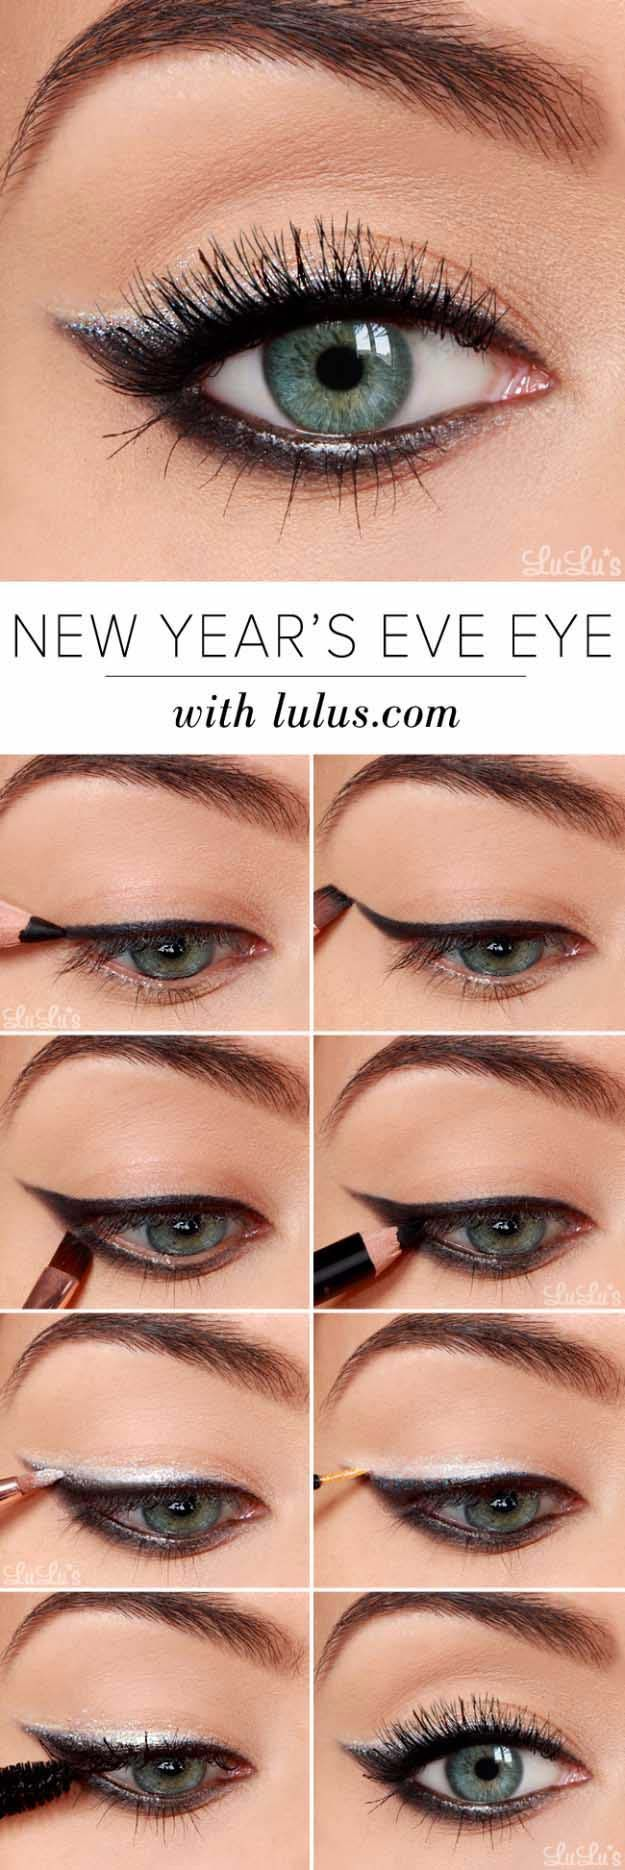 Eyeshadow Tutorials for Beginners - New Year's Eve Eyeshadow Tutorial - Step By Step Tutorial Guides For Beginners with Green, Hazel, Blue and For Brown Eyes - Matte, Natural and Everyday Looks That Are Sure to Impress - Even an Awesoem Video on a Dramatic but Easy Smokey Look - thegoddess.com/eyeshadow-tutorials-beginner